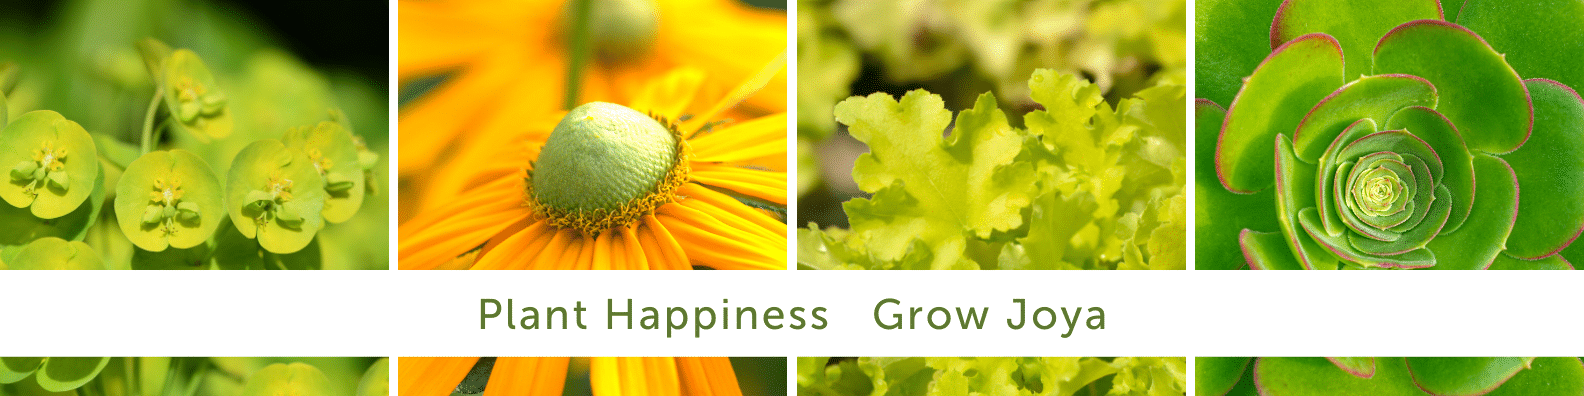 """A collage of close up photos of plants, with the text """"Plant Happiness Grow Joya"""" overlaid on top."""